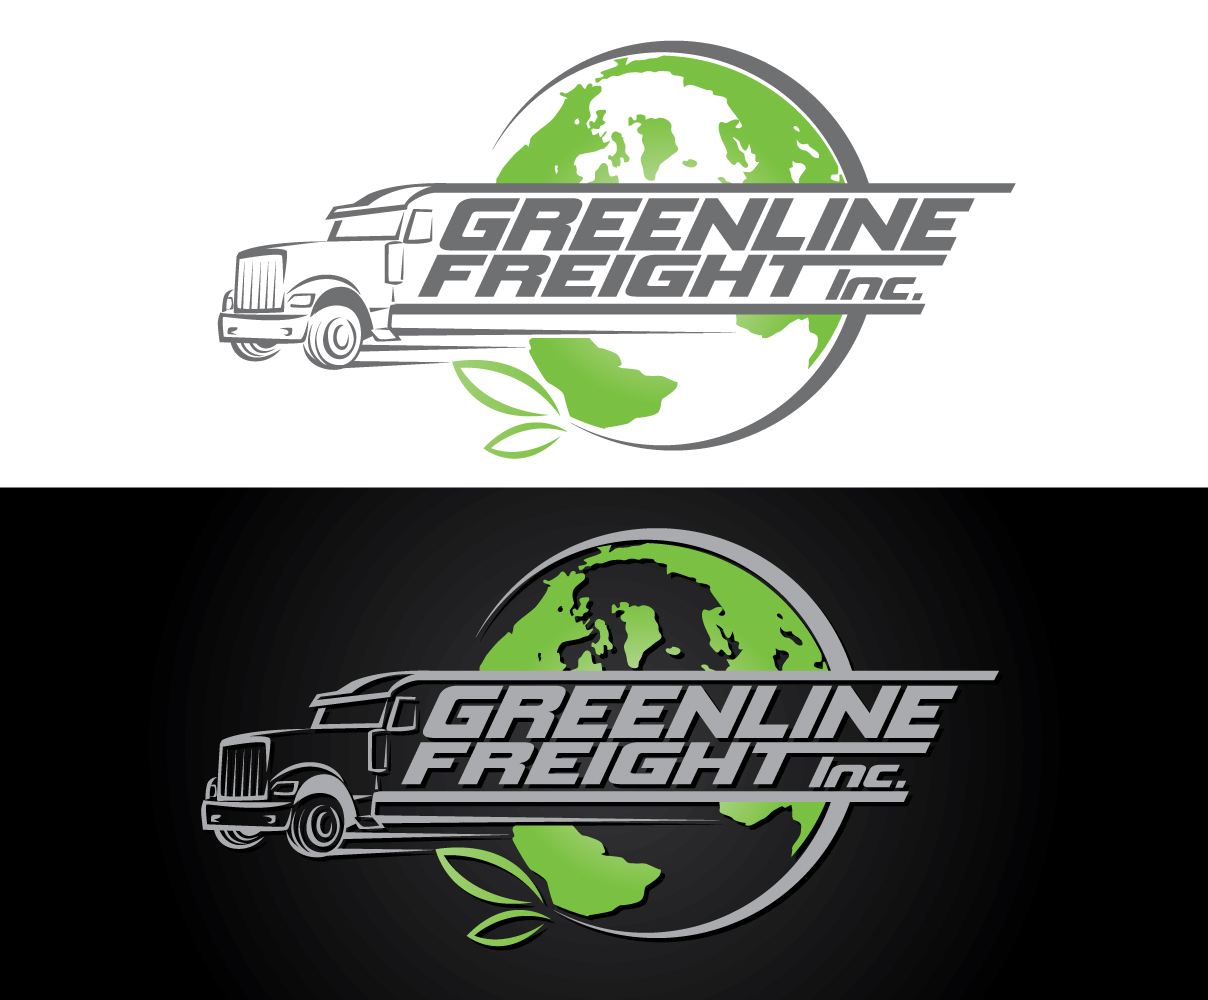 Greenline Freight Logo by Graphicsexpert